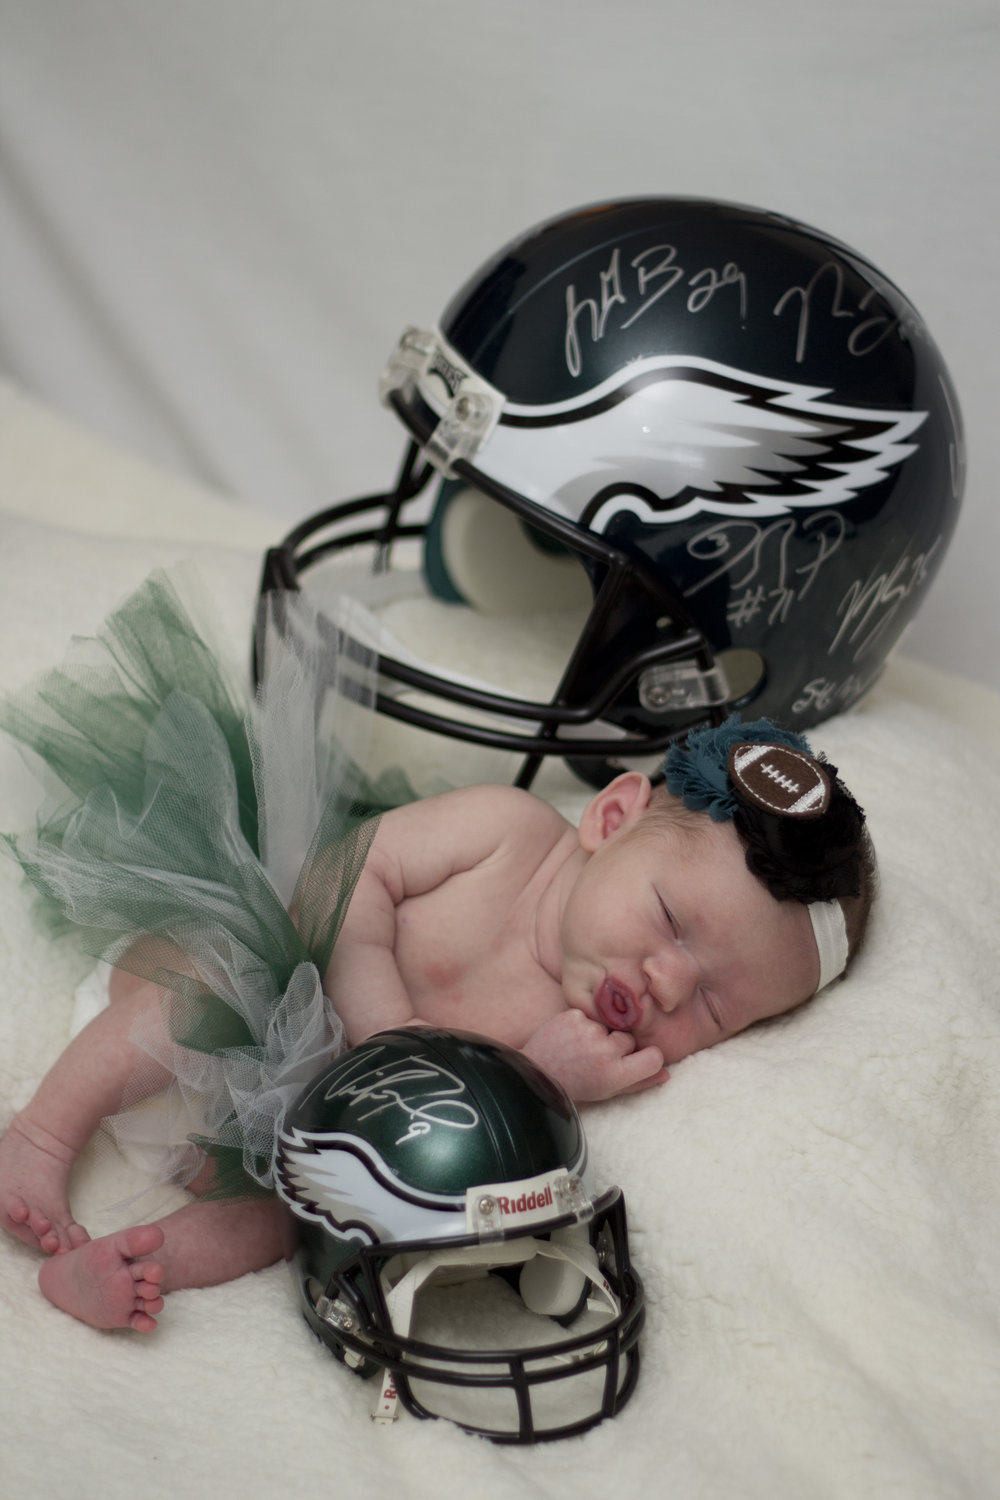 Sweet newborn baby girl session in Southern New Jersey. Look at that newborn baby with all her Eagles football gear! The little helmet is signed by Nick Foles and the larger is signed by the rest of the Super Bowl LII CHAMPS! Go Birds!